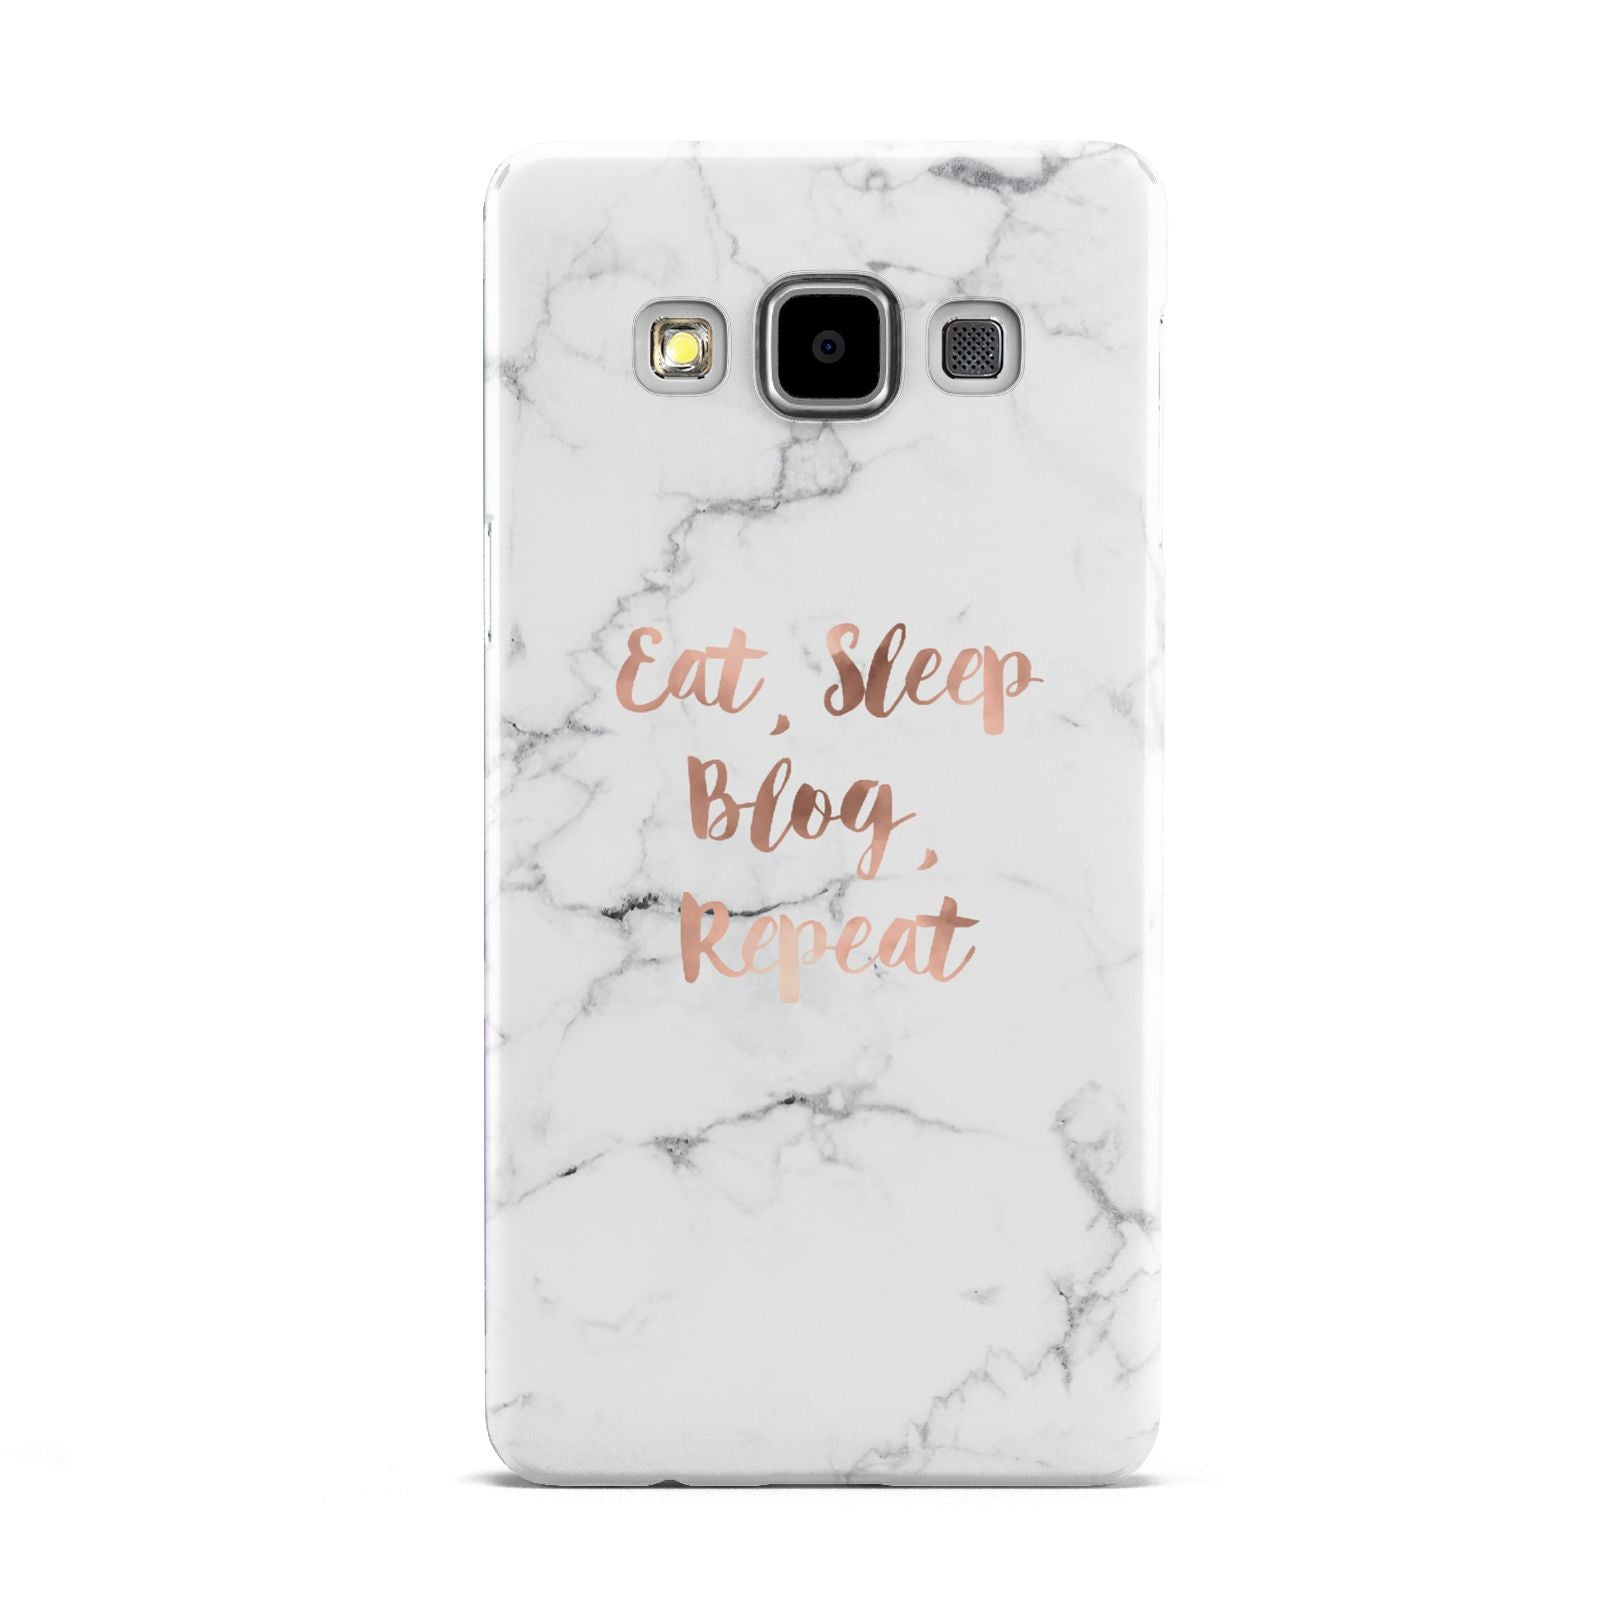 Eat Sleep Blog Repeat Marble Effect Samsung Galaxy A5 Case